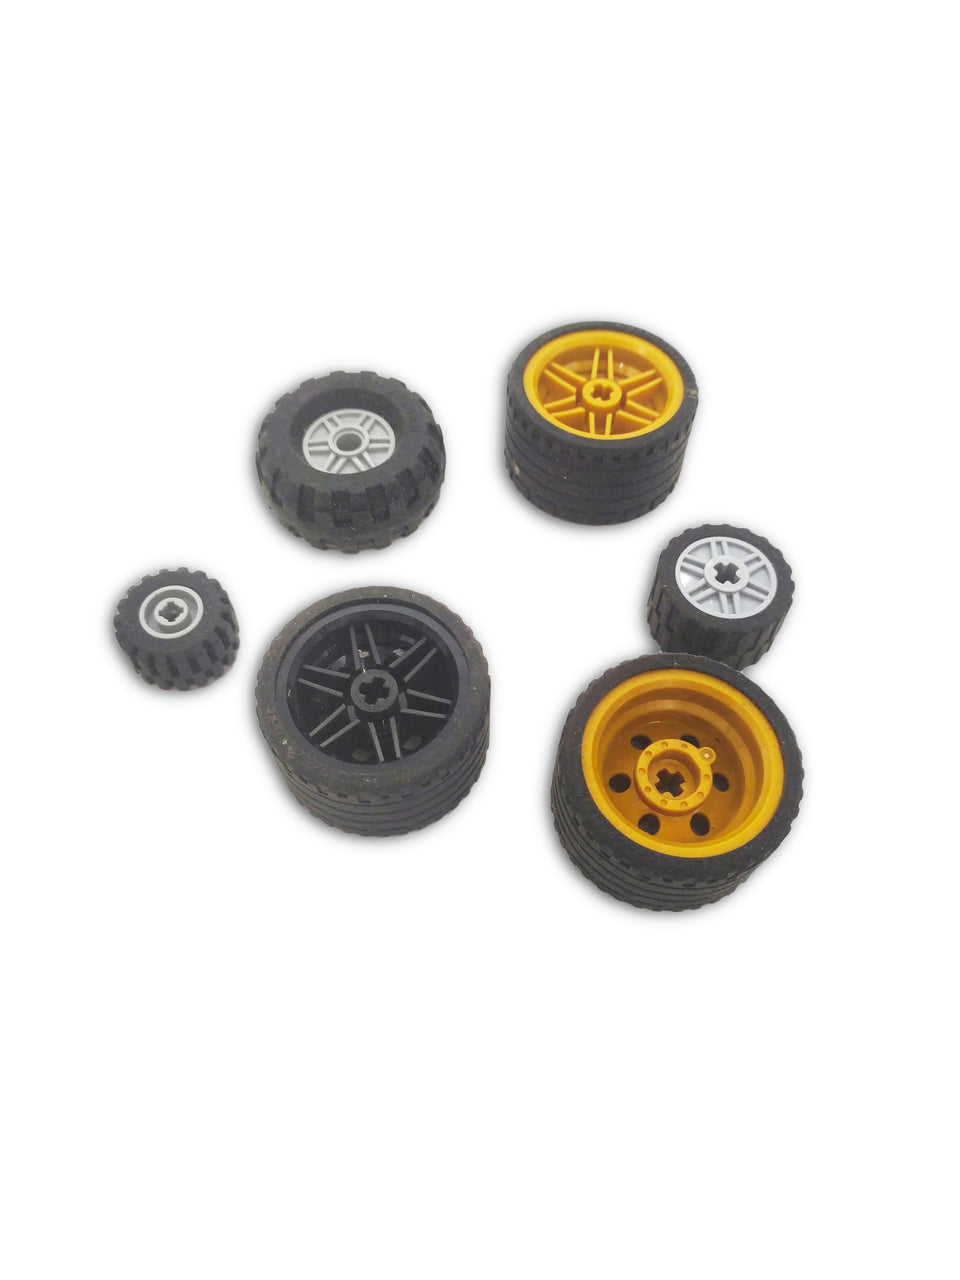 15 Lego Wheels Mix